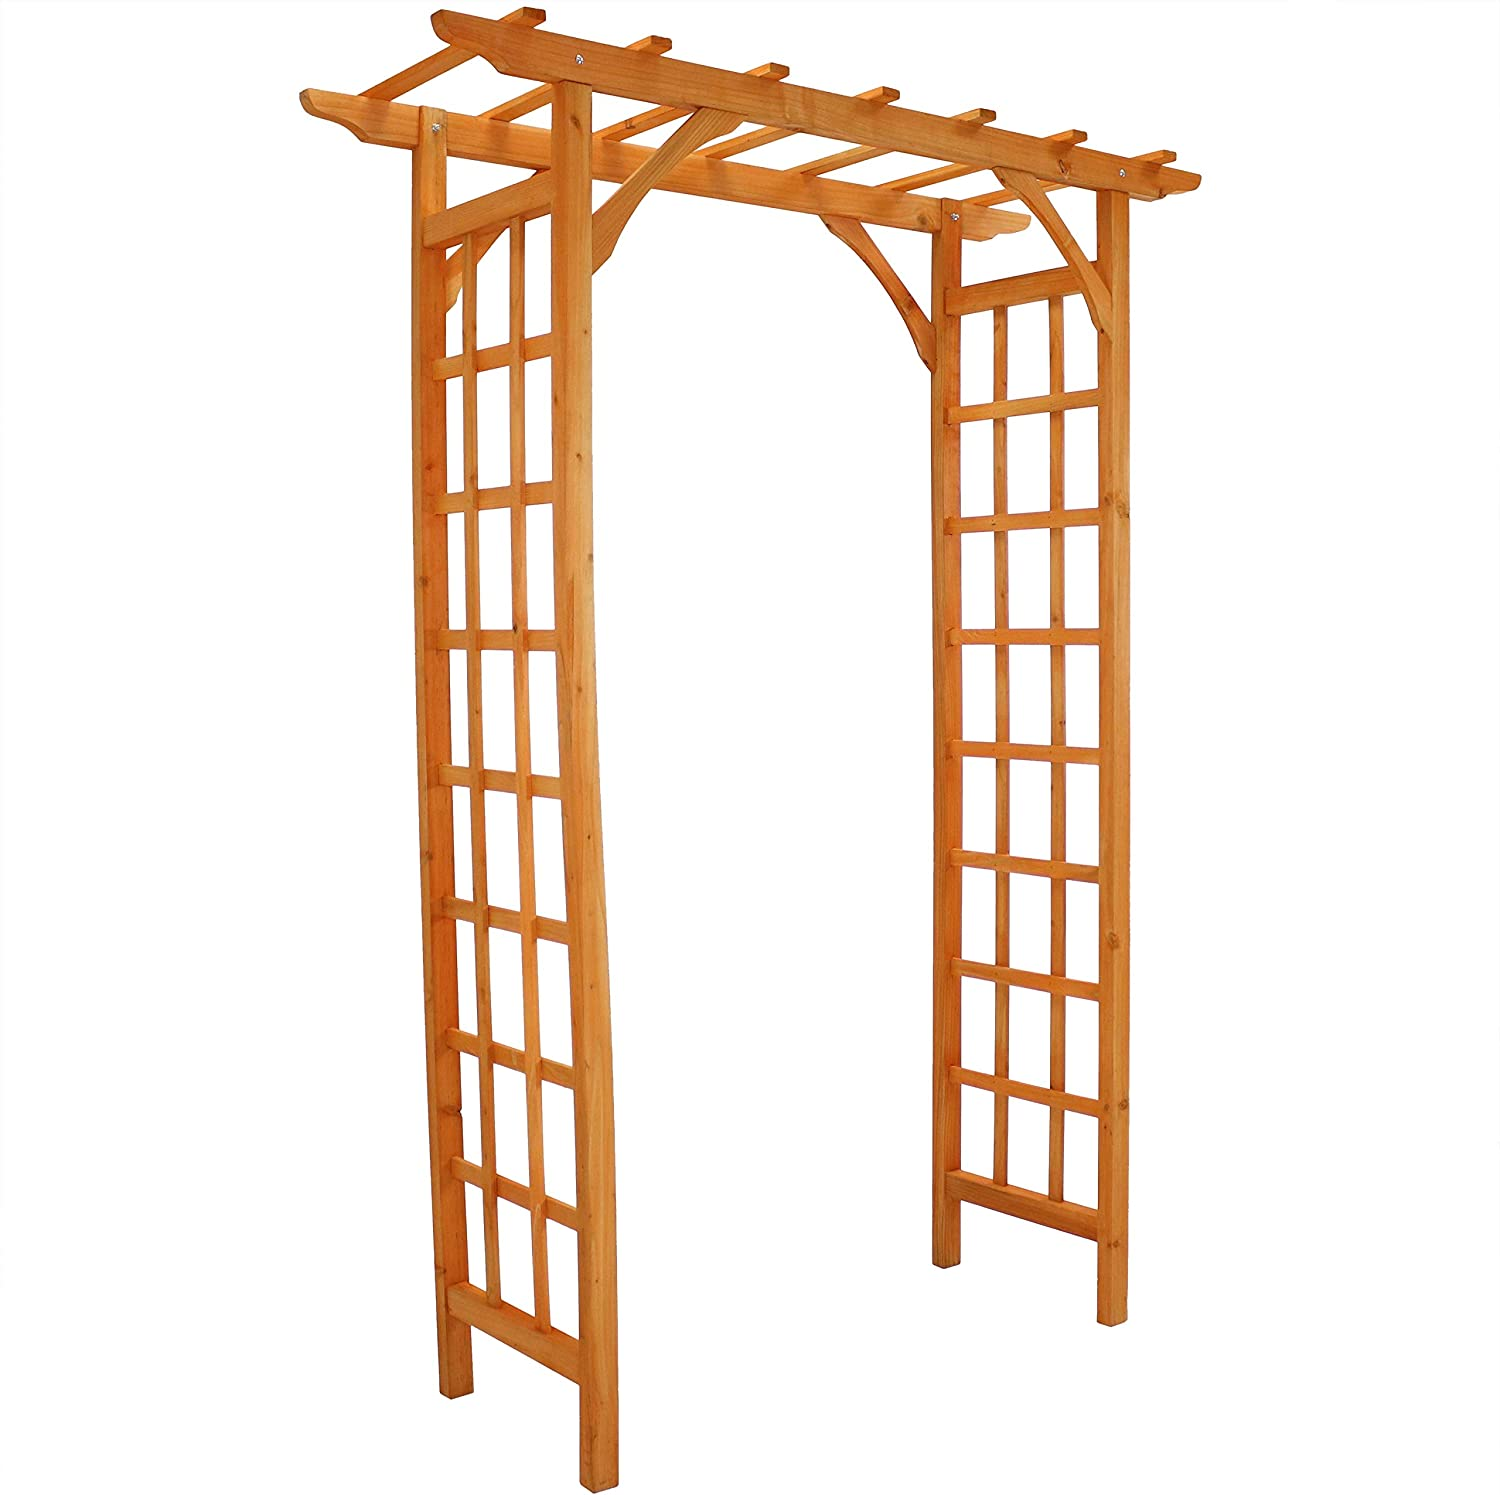 Sunnydaze Wooden Garden Arbor - Outdoor Wedding Arch - Great Garden Accent Piece - Trellis Sides for Climbing Plants - Durable Fir Wood Material - Weatherproof Finish - Place Over Walkways - 78-Inch